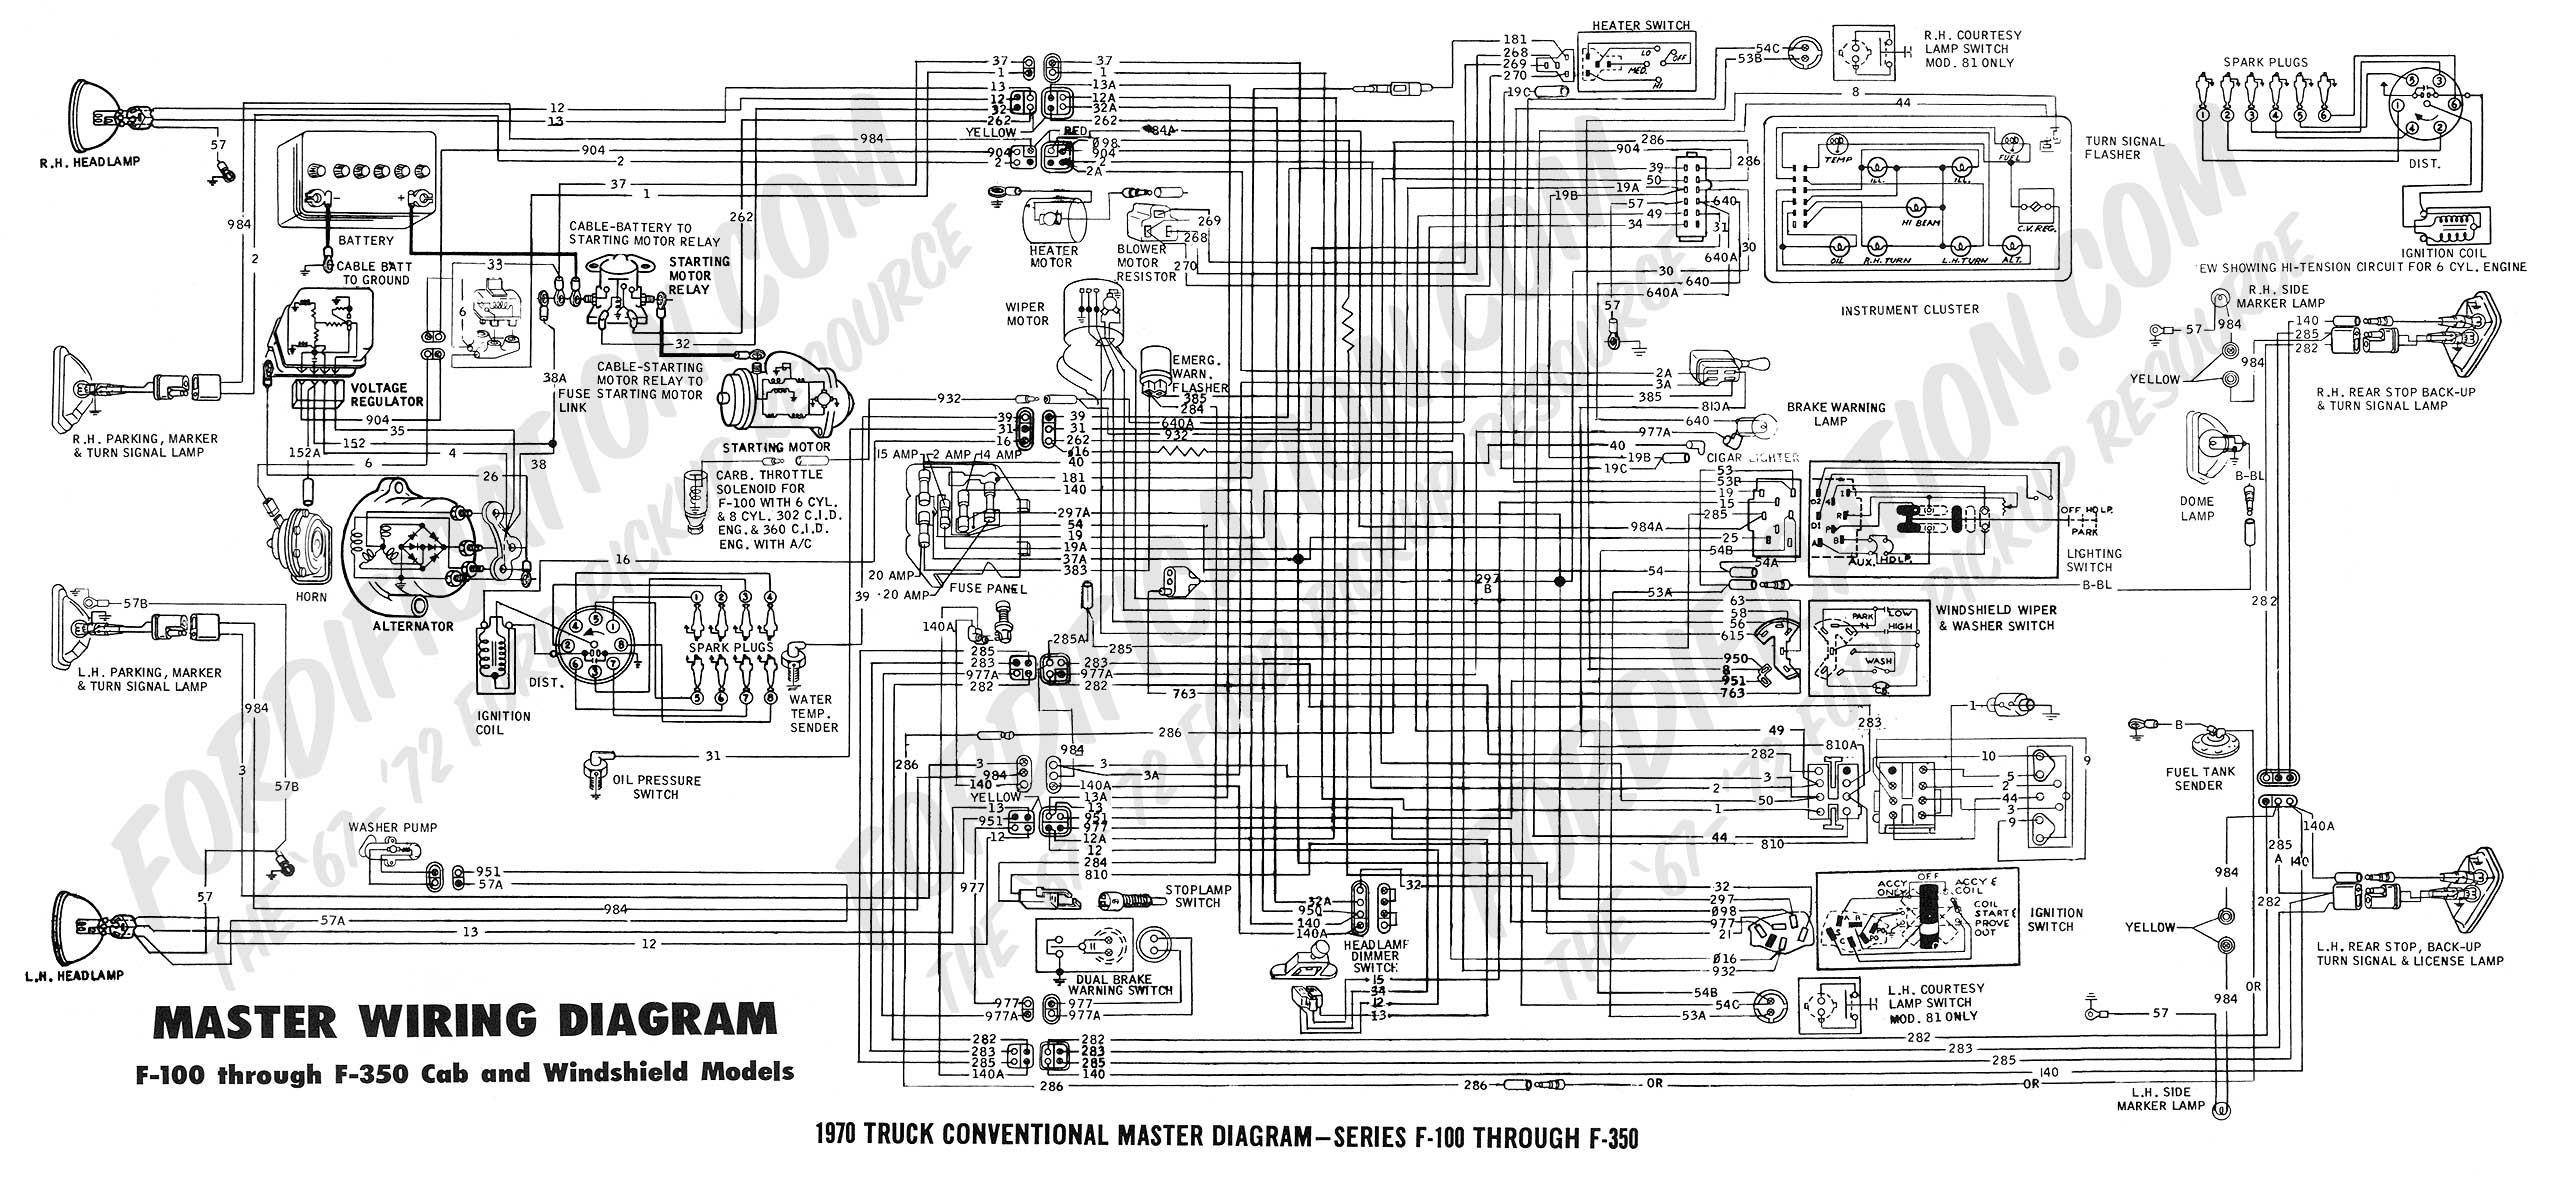 f350 wiring diagram f350 wiring diagrams f350 wiring diagrams